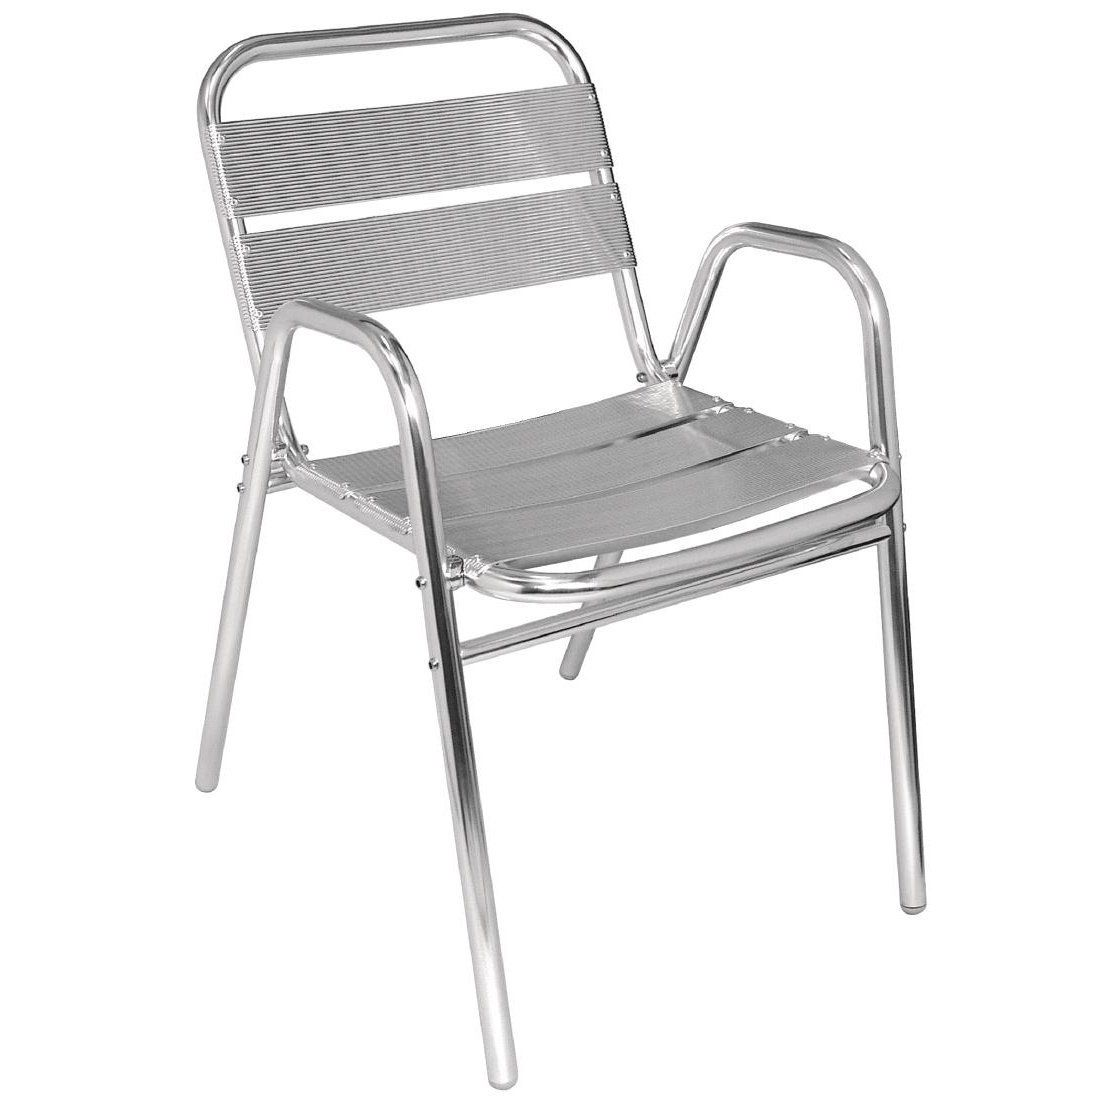 Bistrostühle Aluminium Bolero U501 Stacking Aluminium Chair With Arched Arms Pack